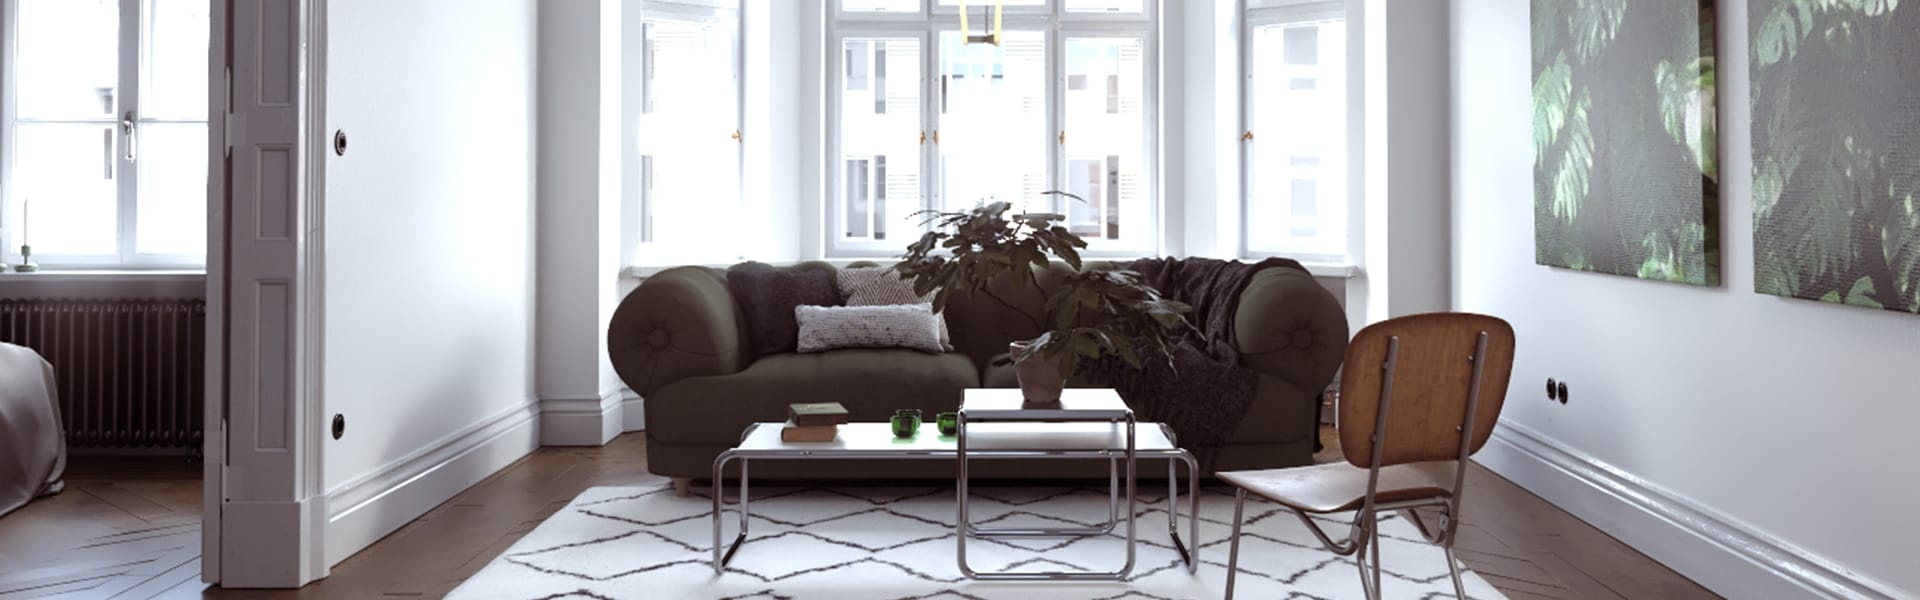 product-page-v-ray-5-unreal-1920x600-updated.jpg